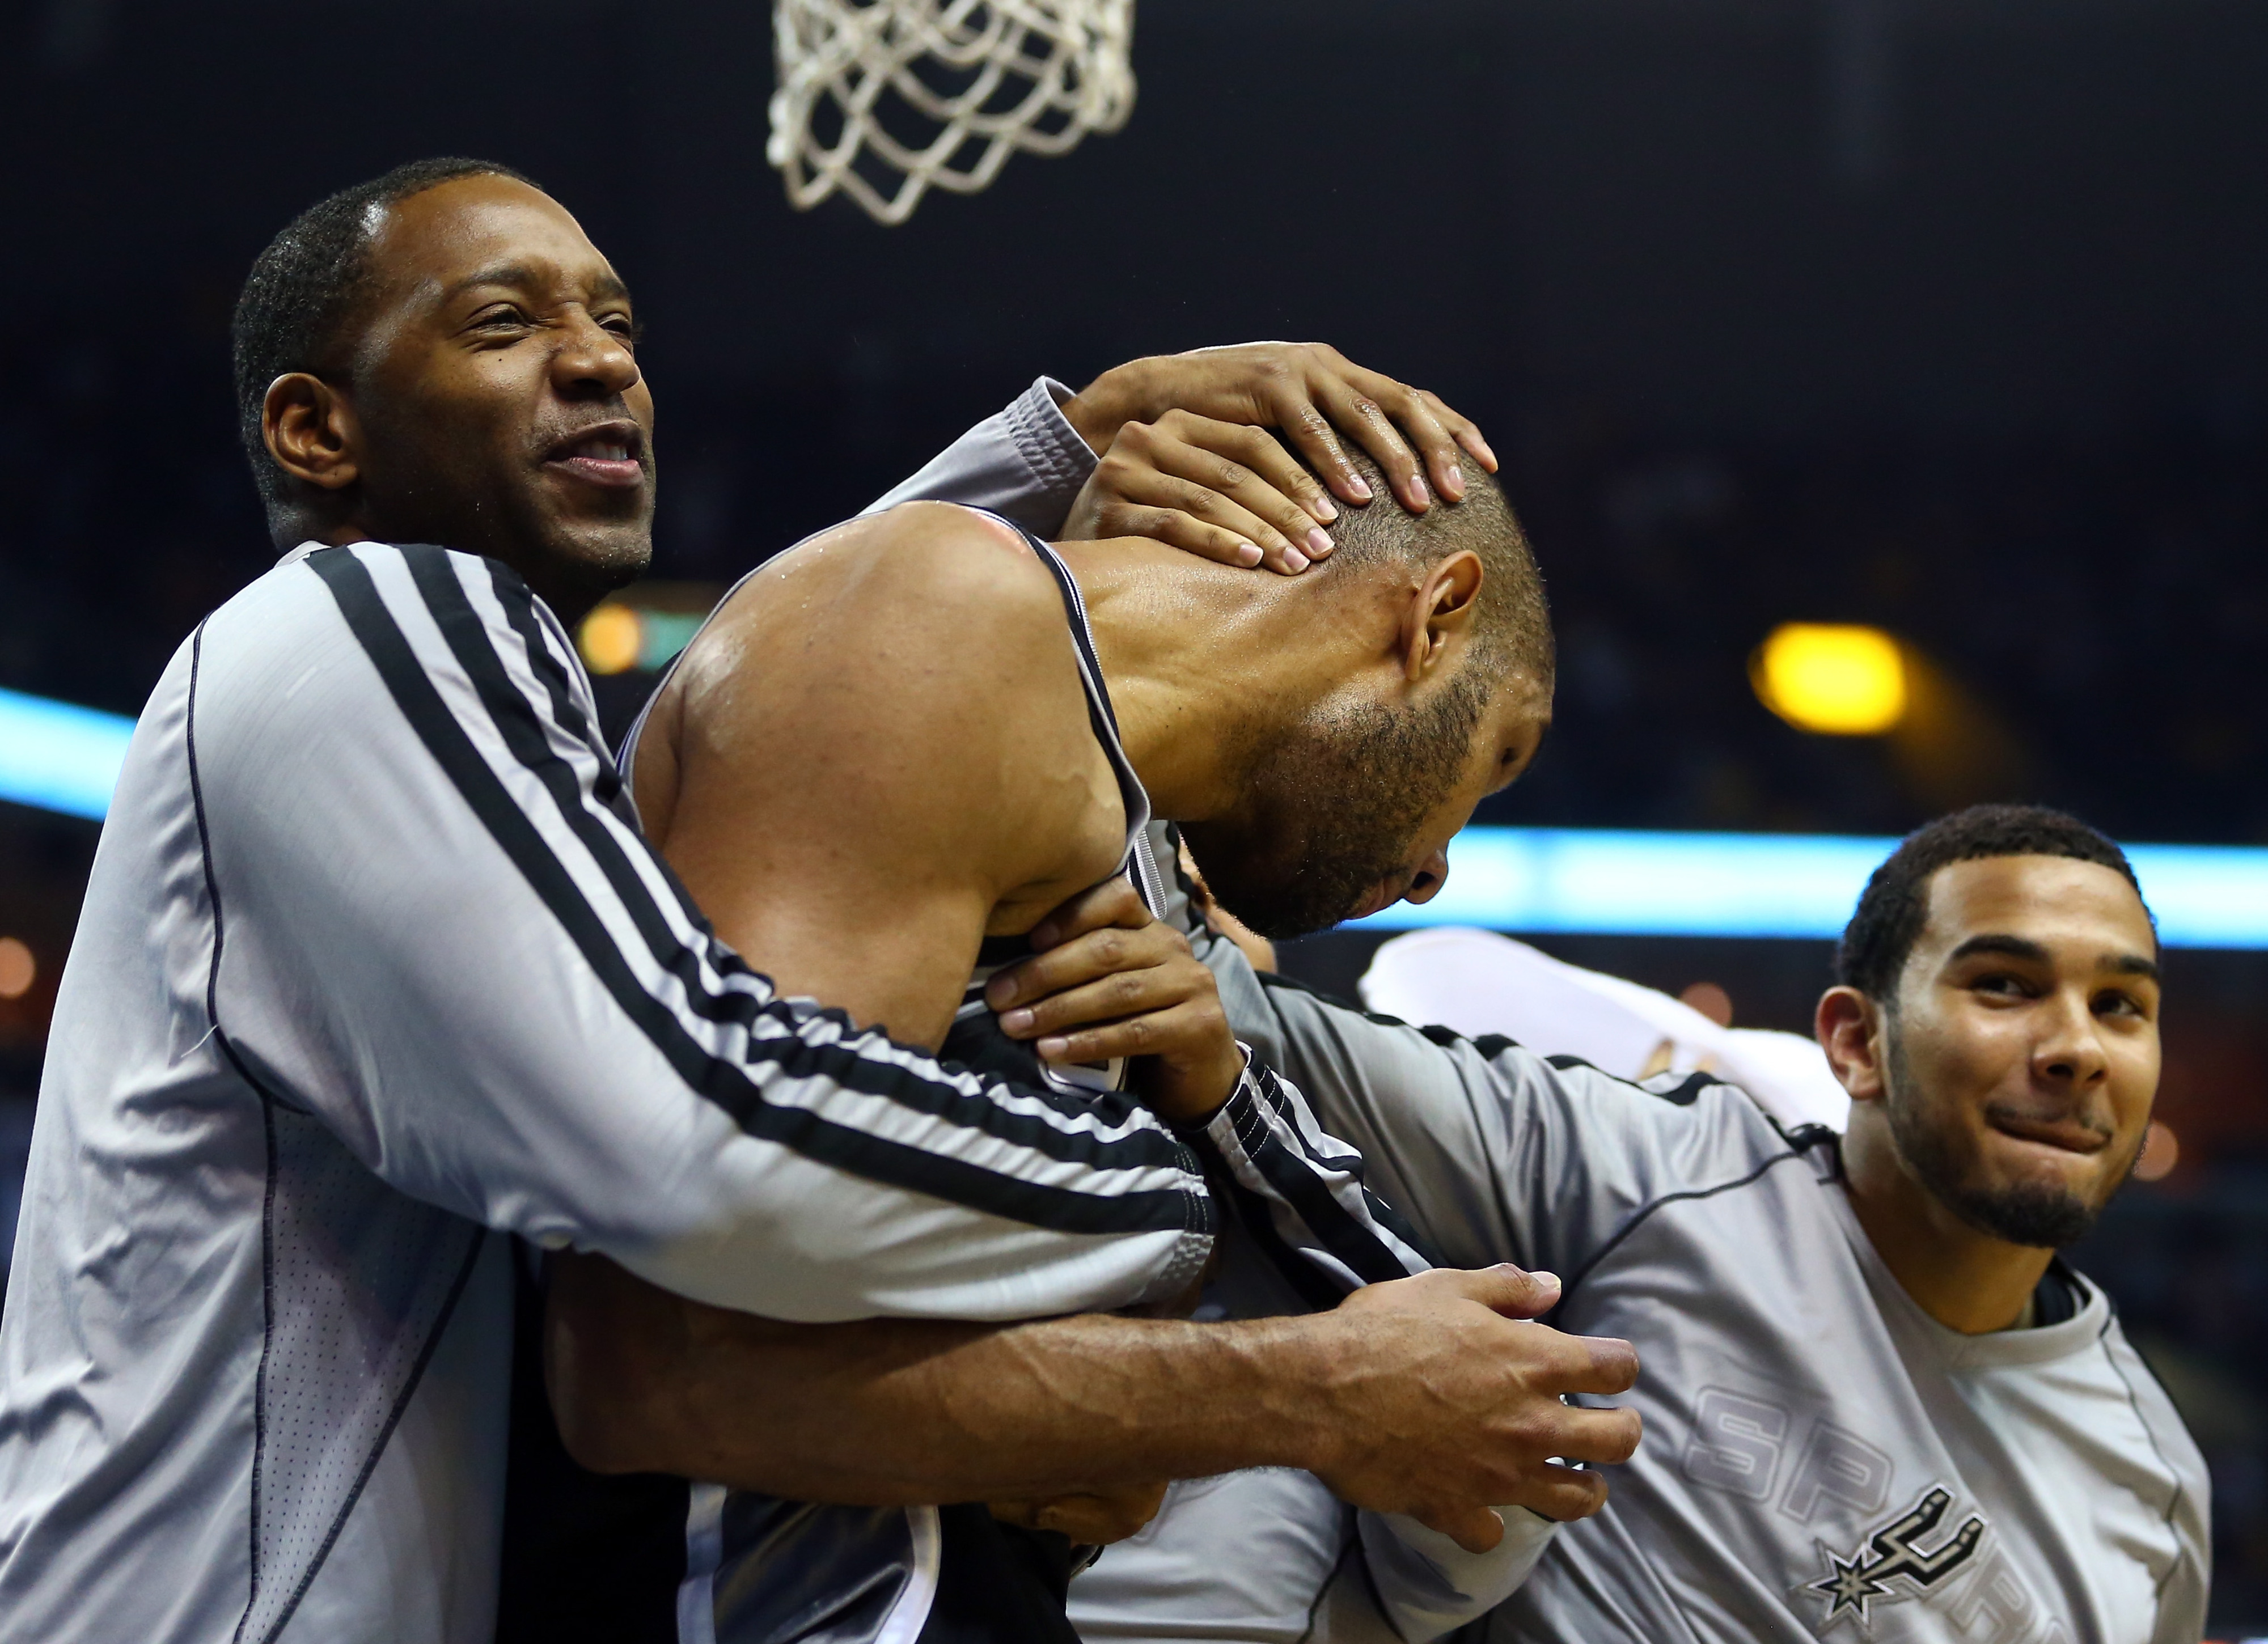 2013 NBA Playoffs highlights: Spurs beat Grizzlies in overtime for 3-0 series lead